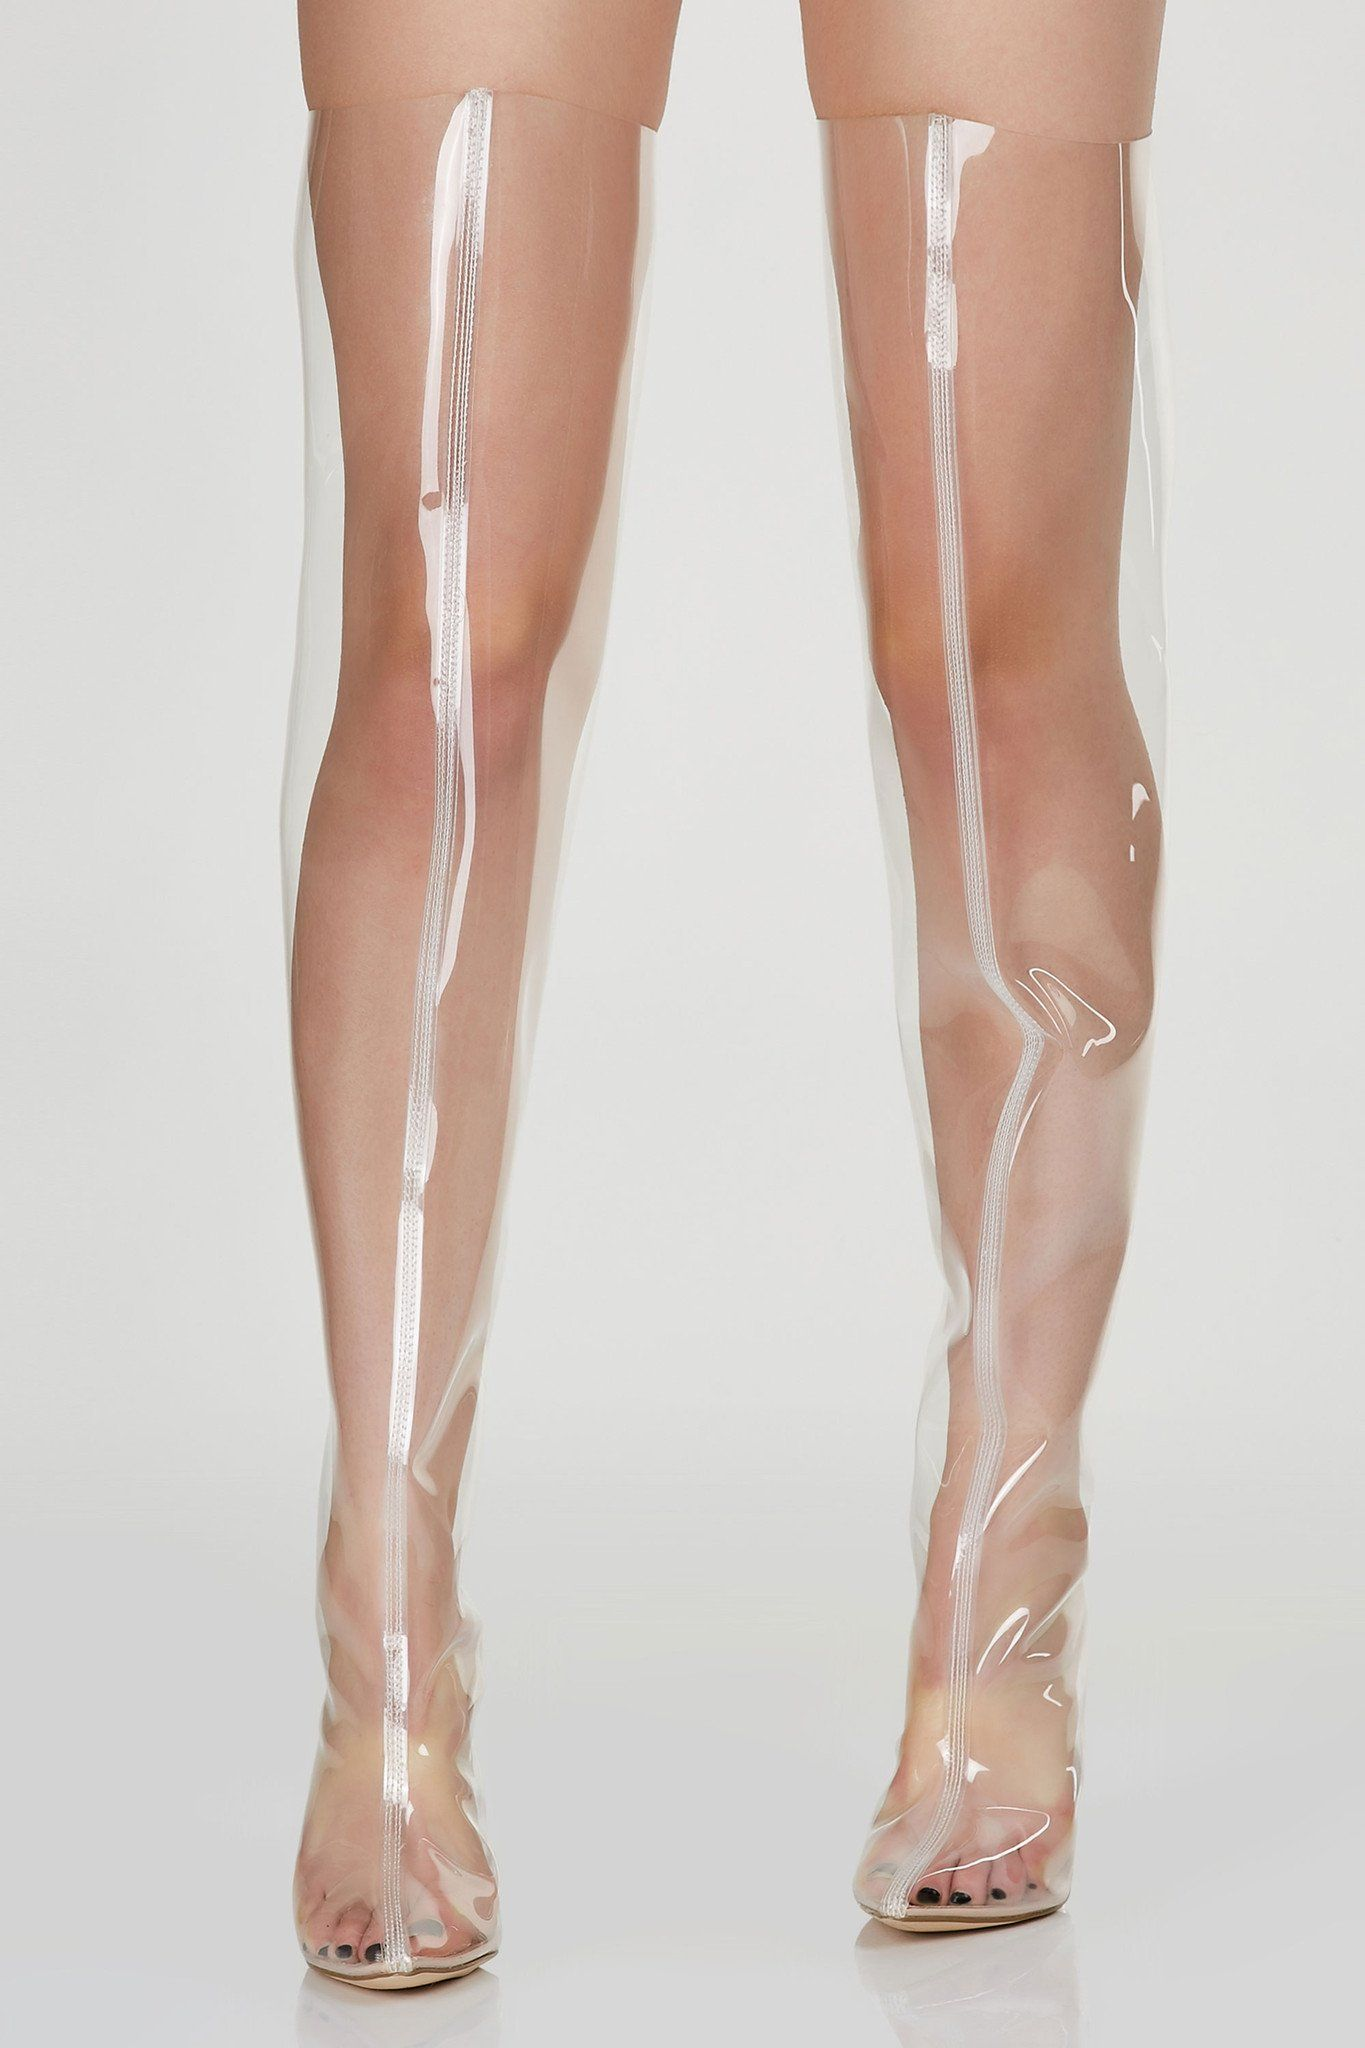 see through thigh high boots with back zip closure